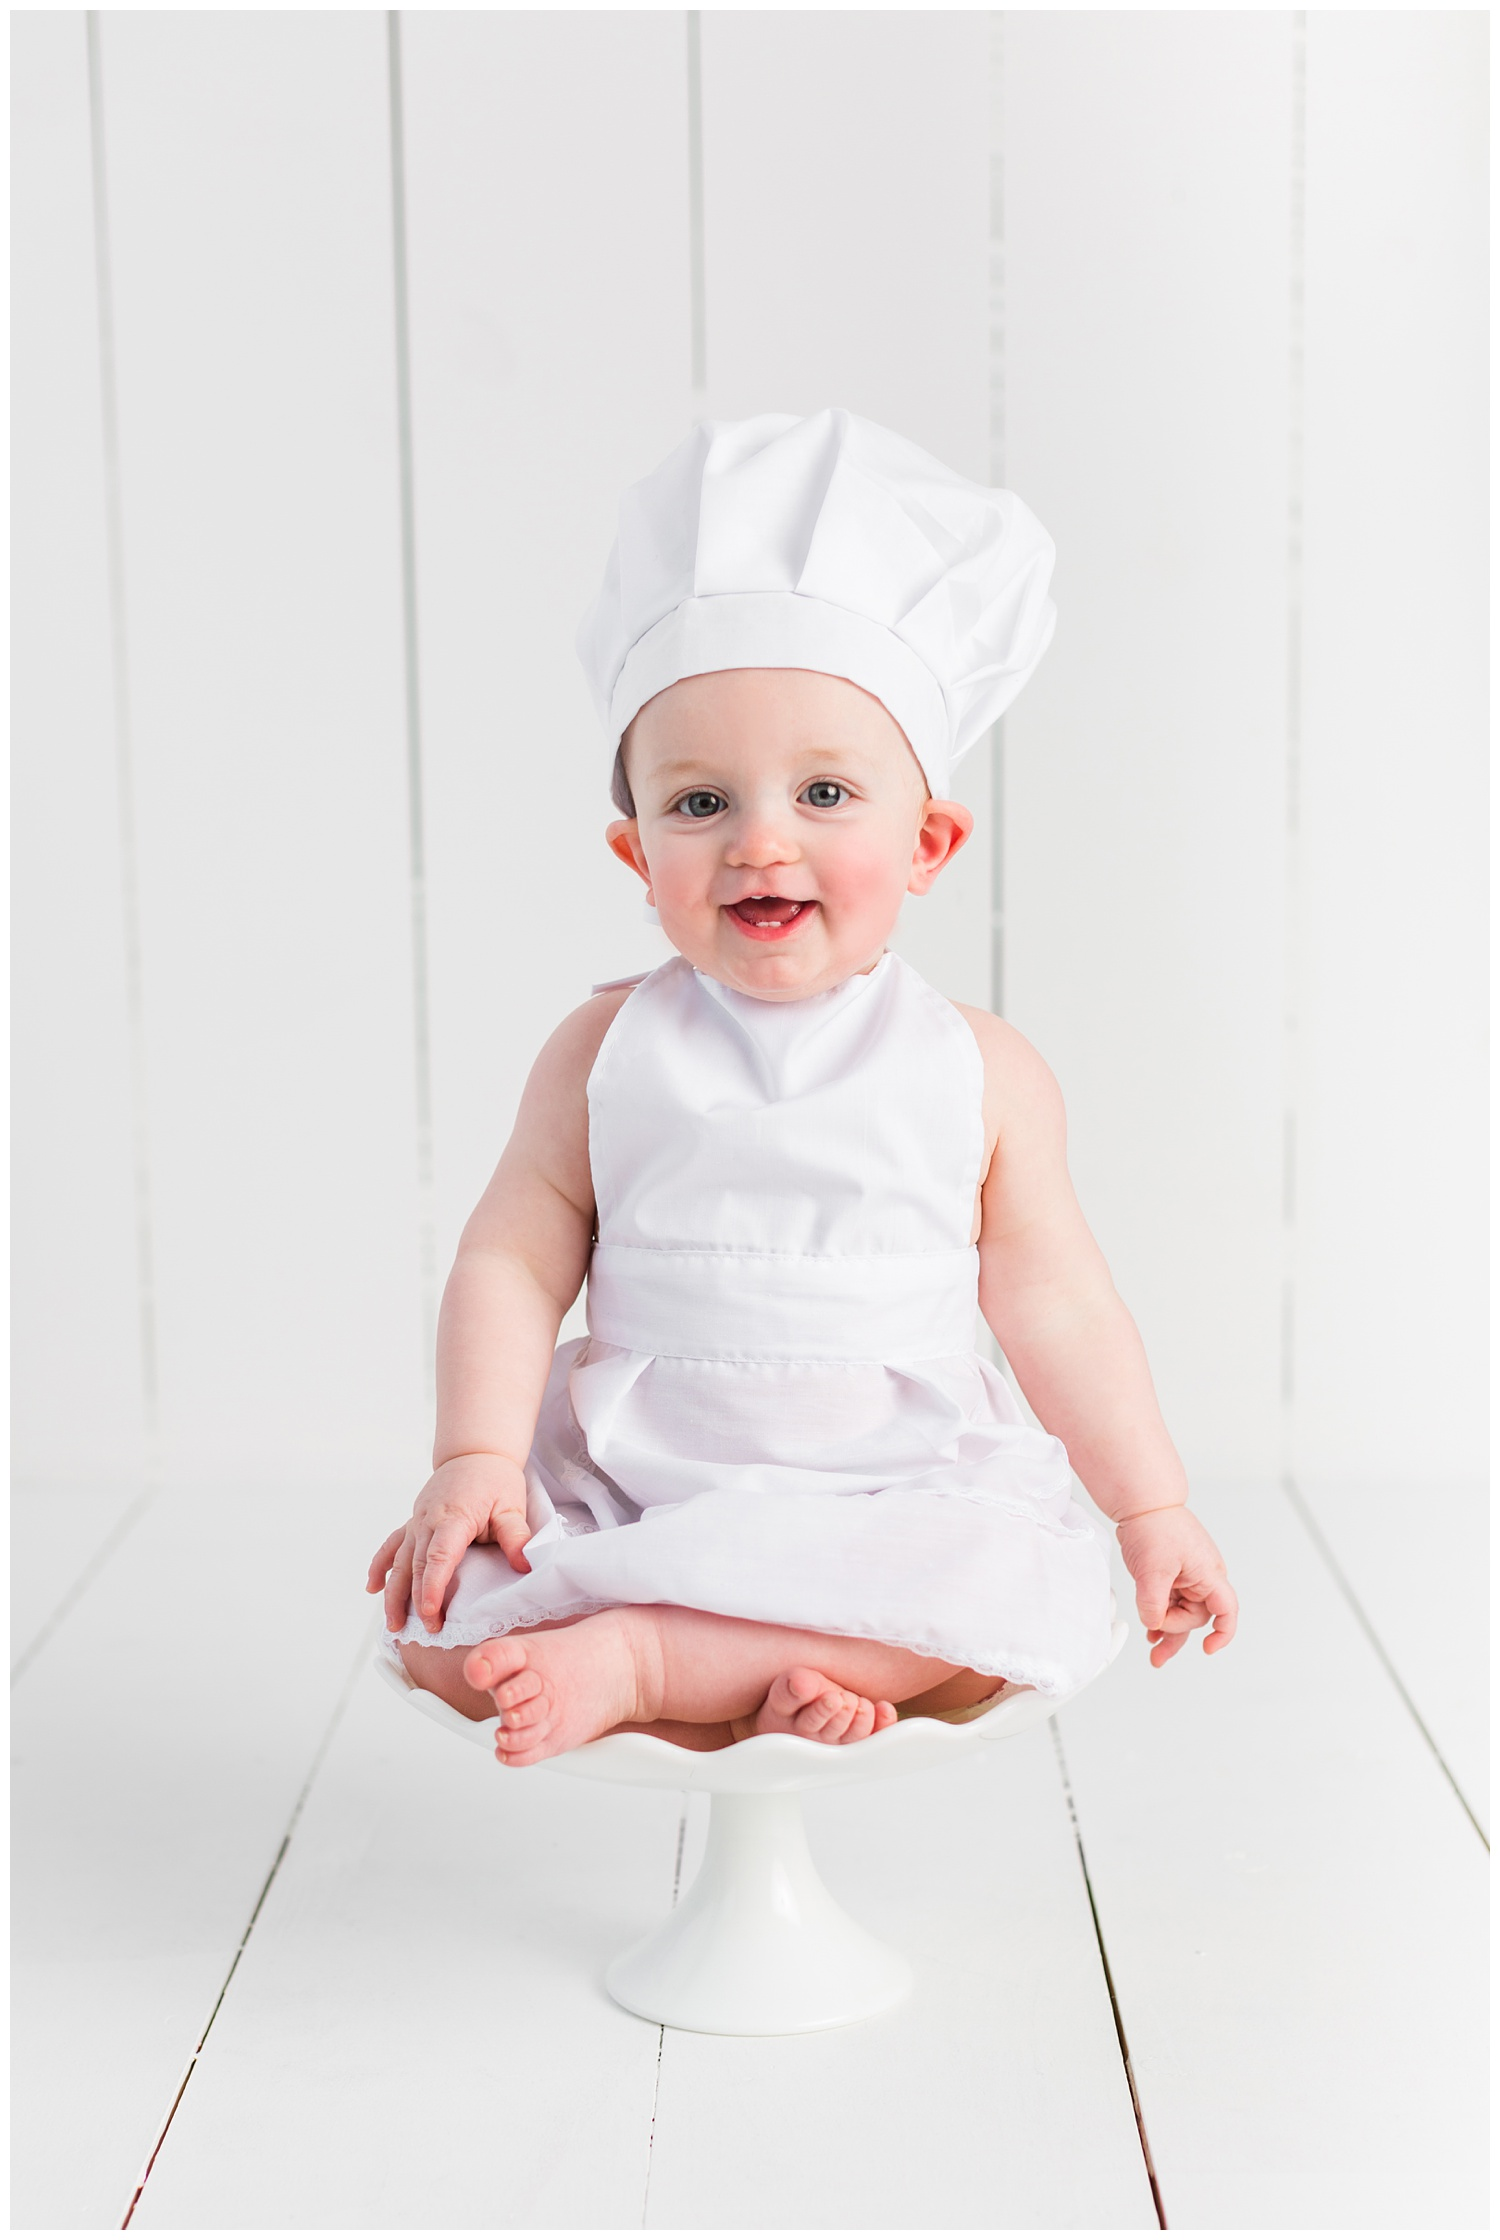 Baking theme baby sitter session | Iowa Baby Photographer | CB Studio